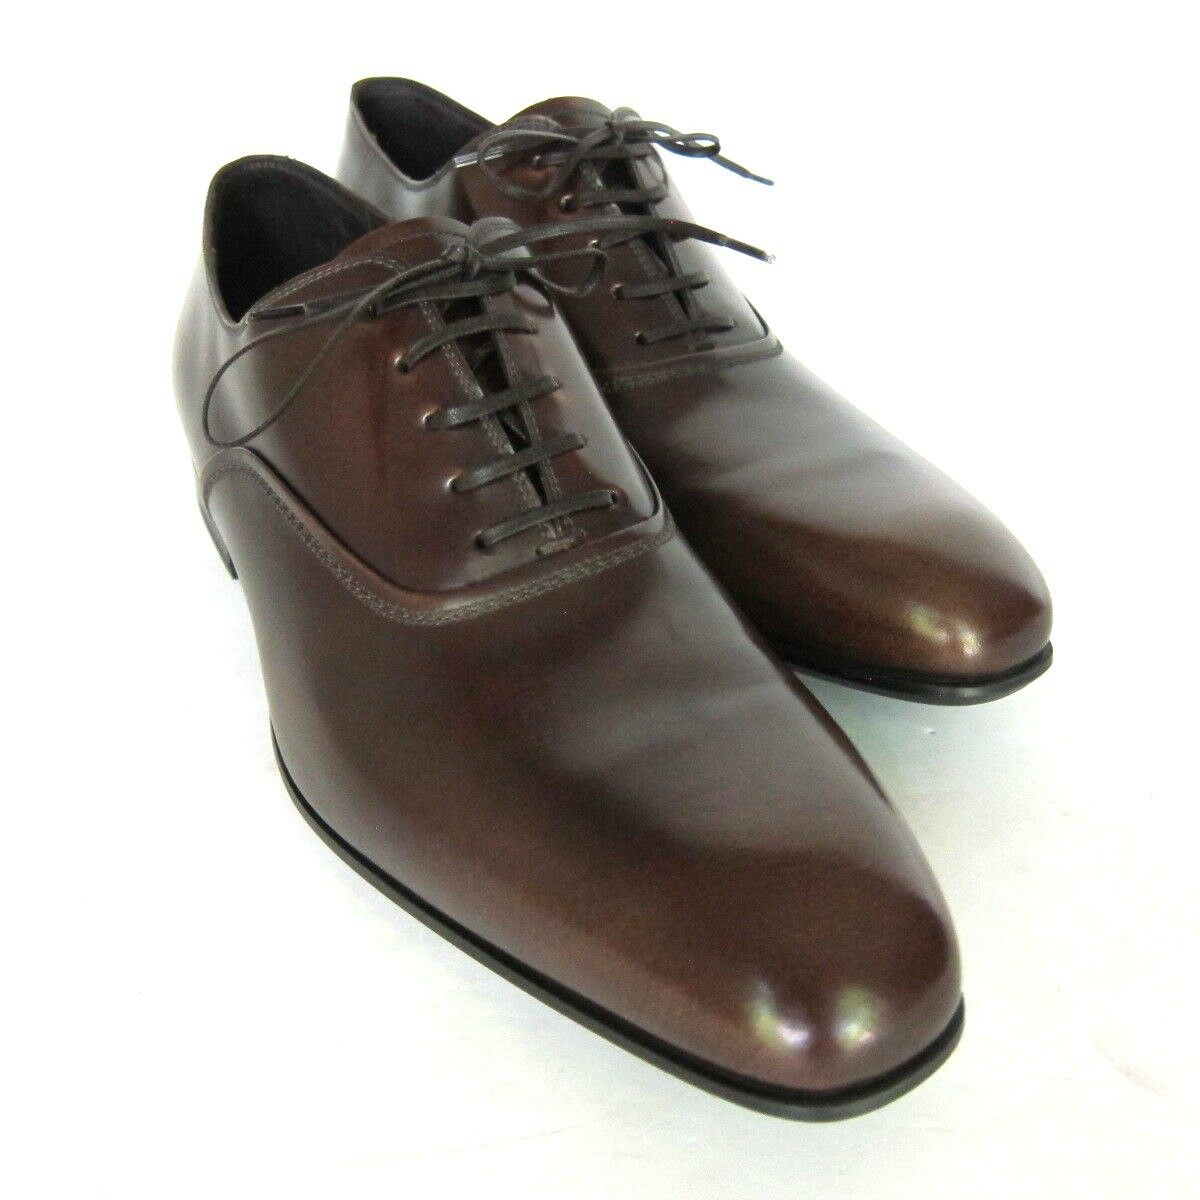 S-2291215 New Salvatore Ferragamo Dunn Madera Leather LaceUp shoes Size US 12D